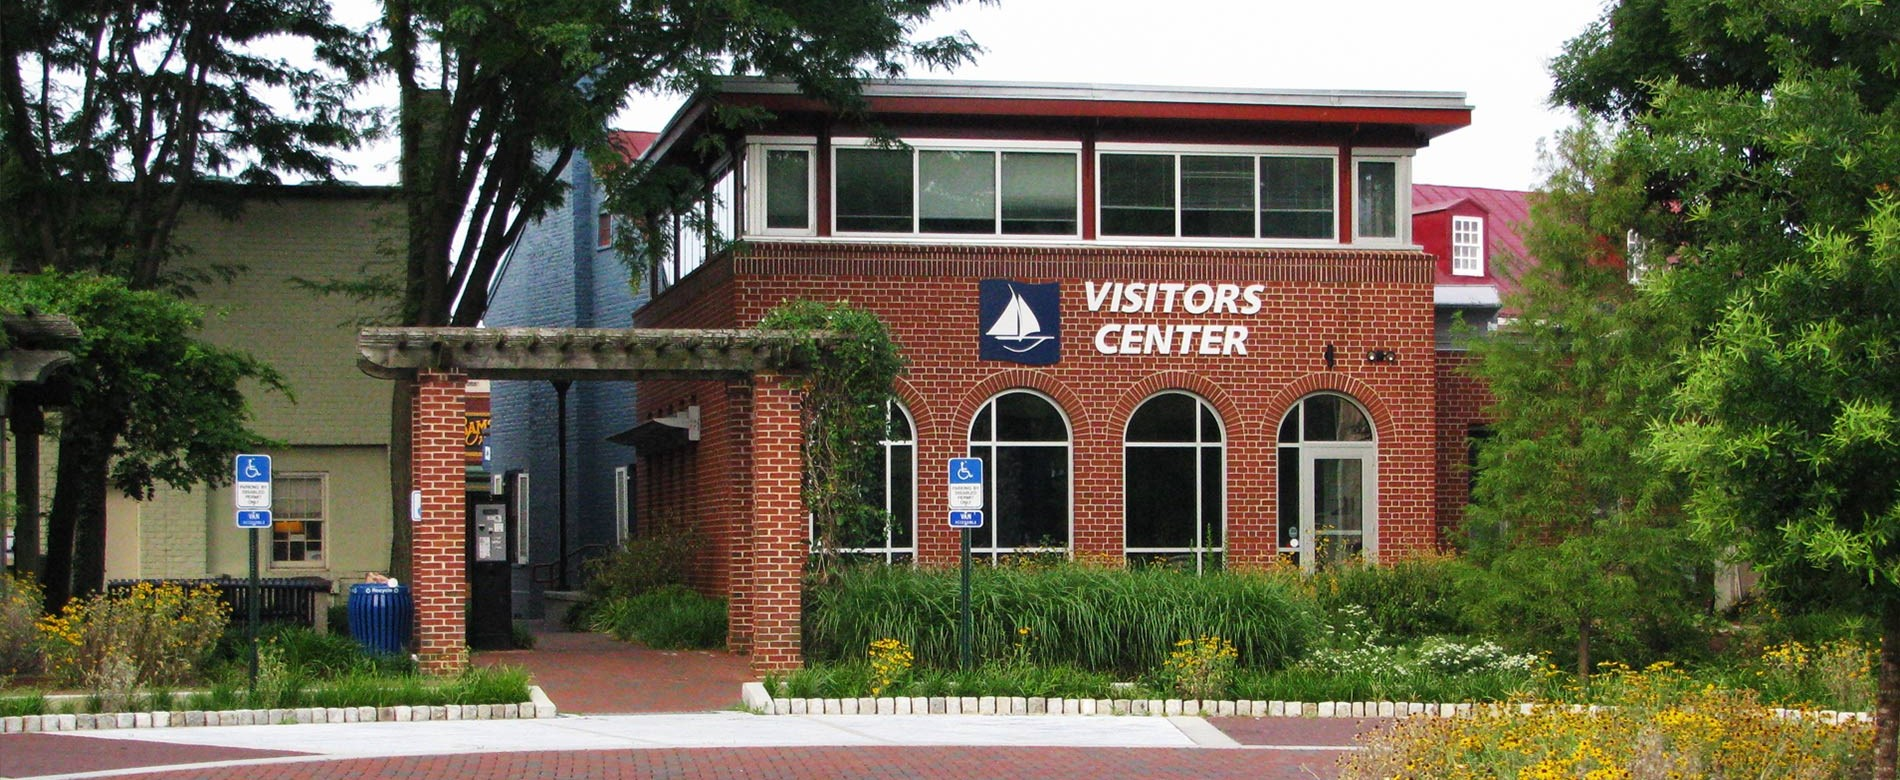 Annapolis and Anne Arundel County Visitor Information Center